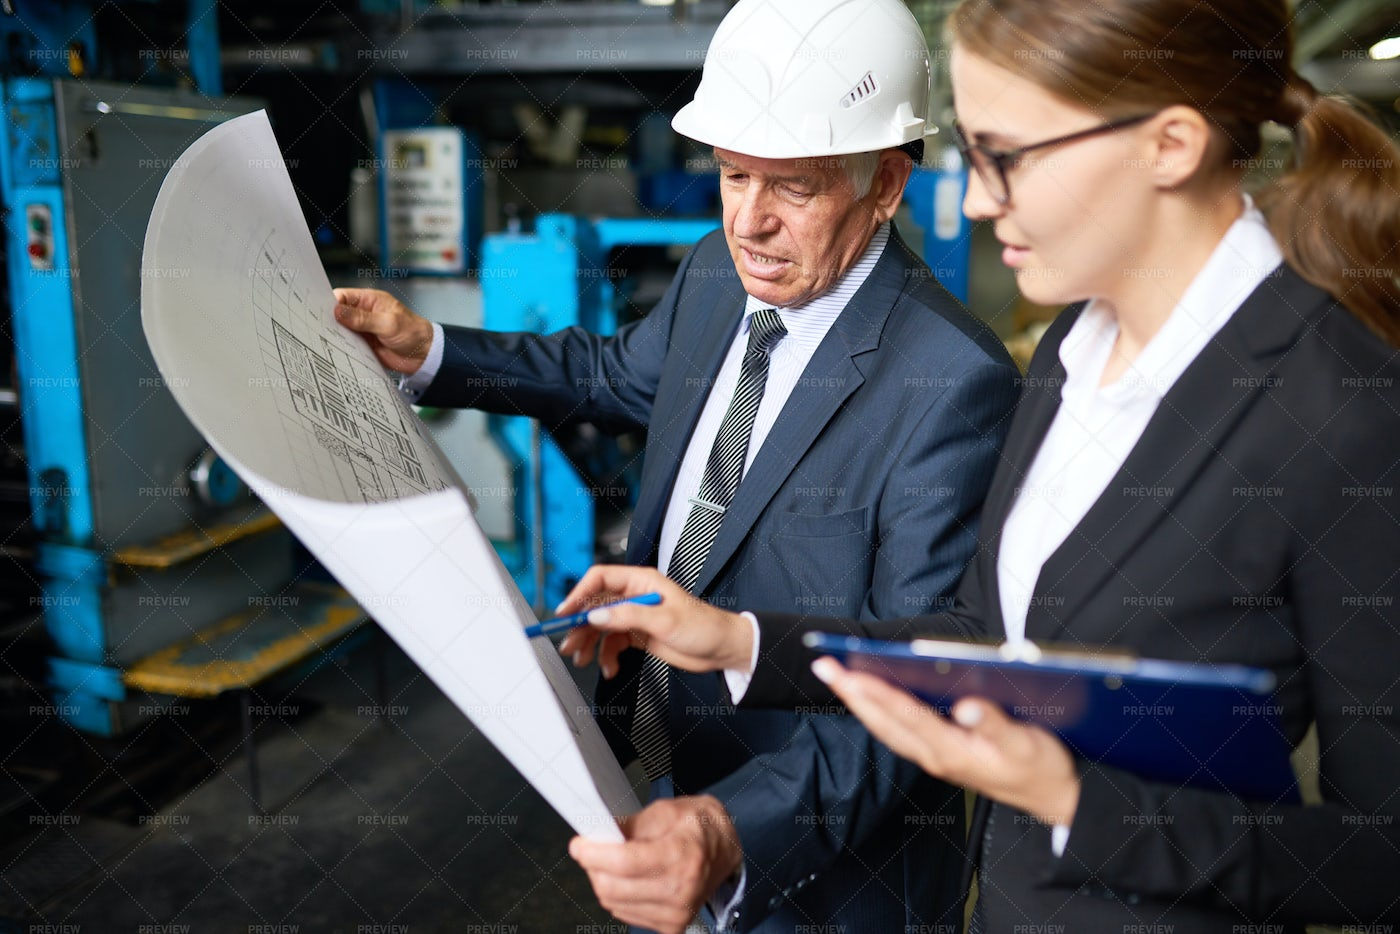 Senior Manager Discussing  Factory...: Stock Photos